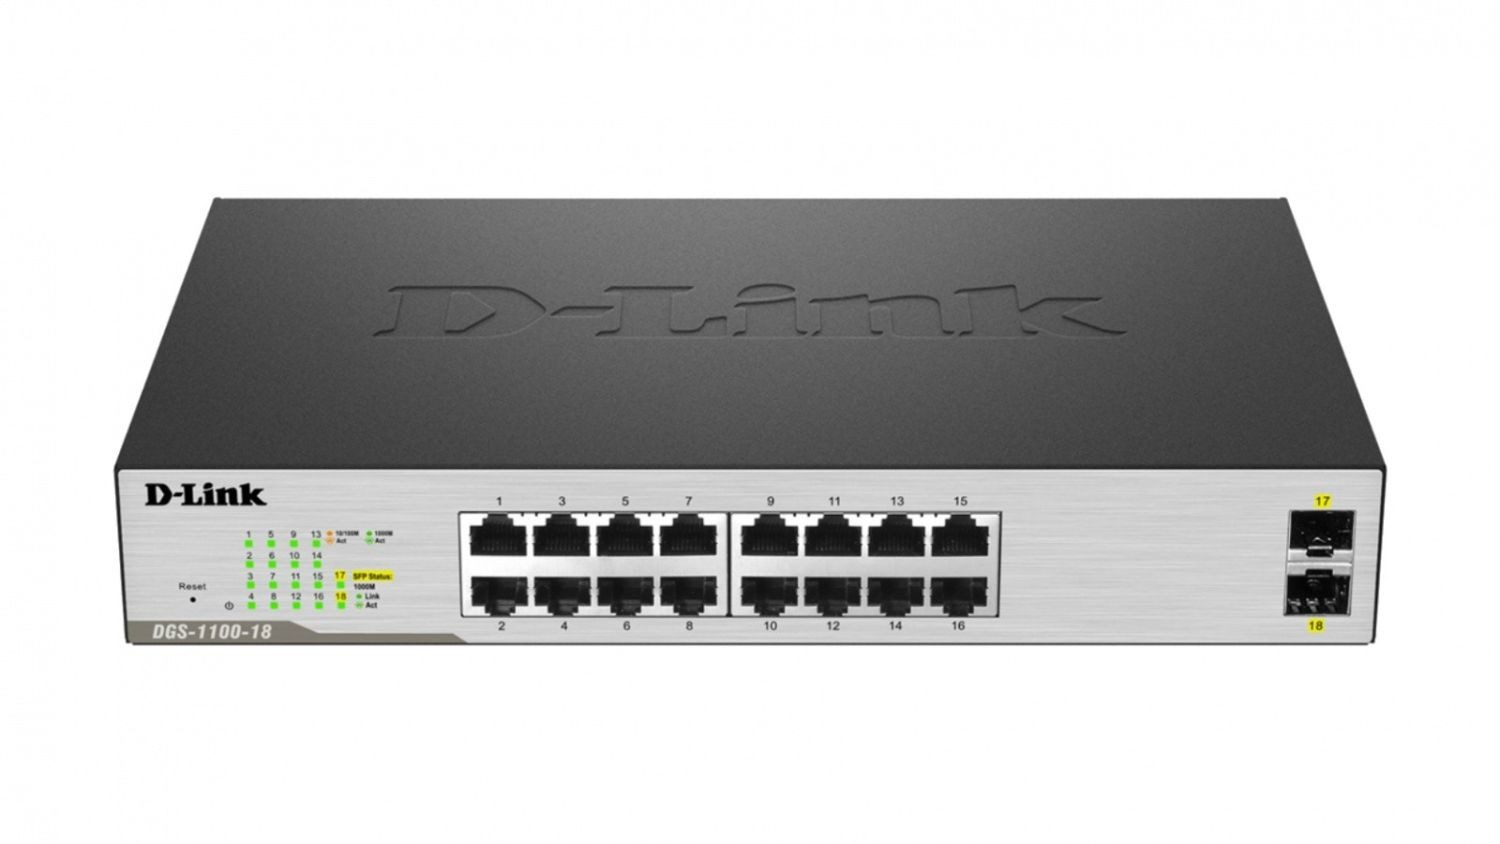 D-Link 18-Port Gigabit Smart Switch